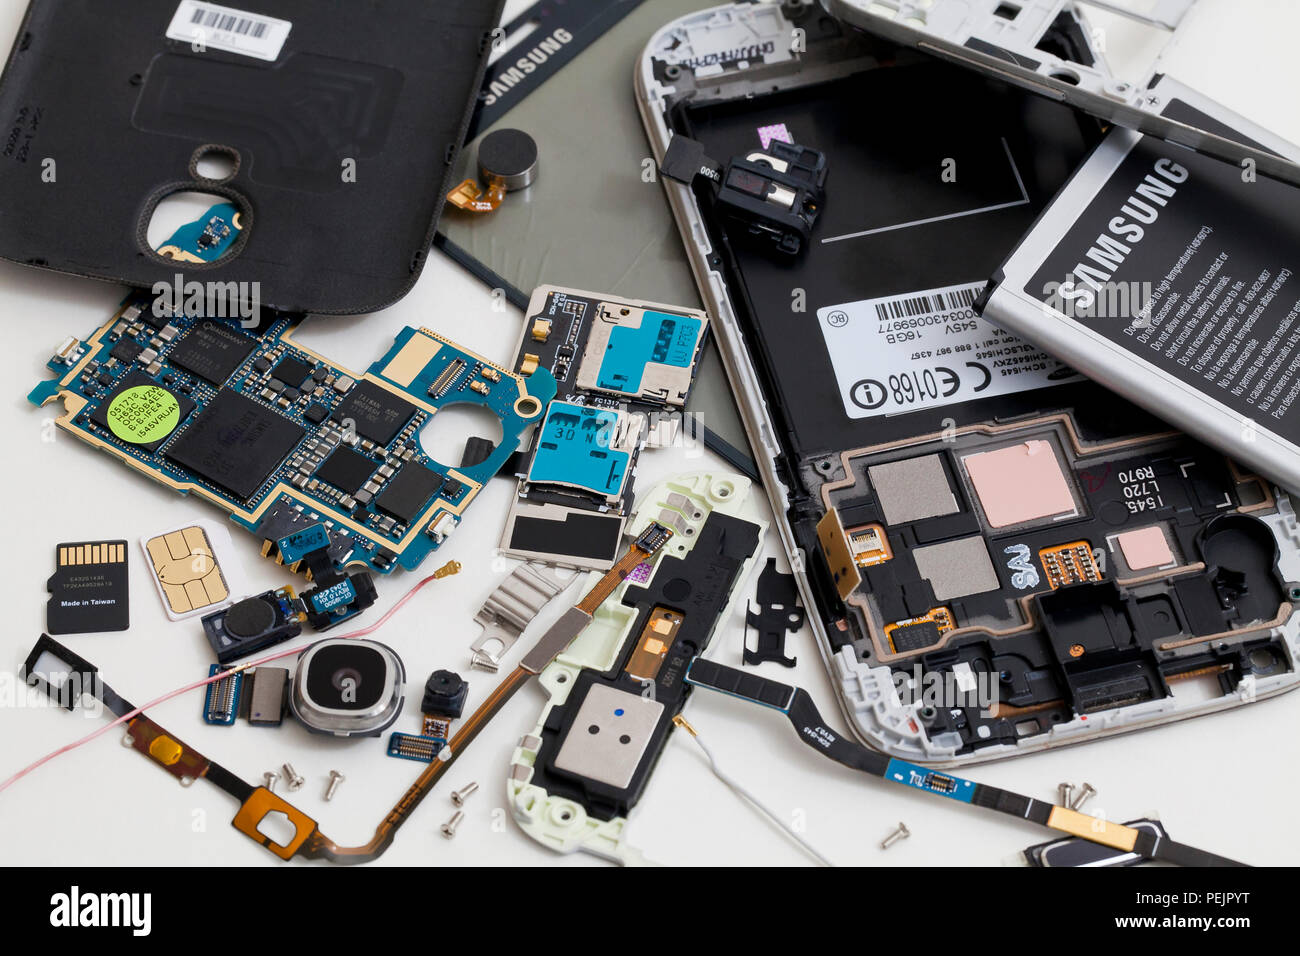 Disassembled Samsung Galaxy mobile phone, showing various internal components - USA - Stock Image